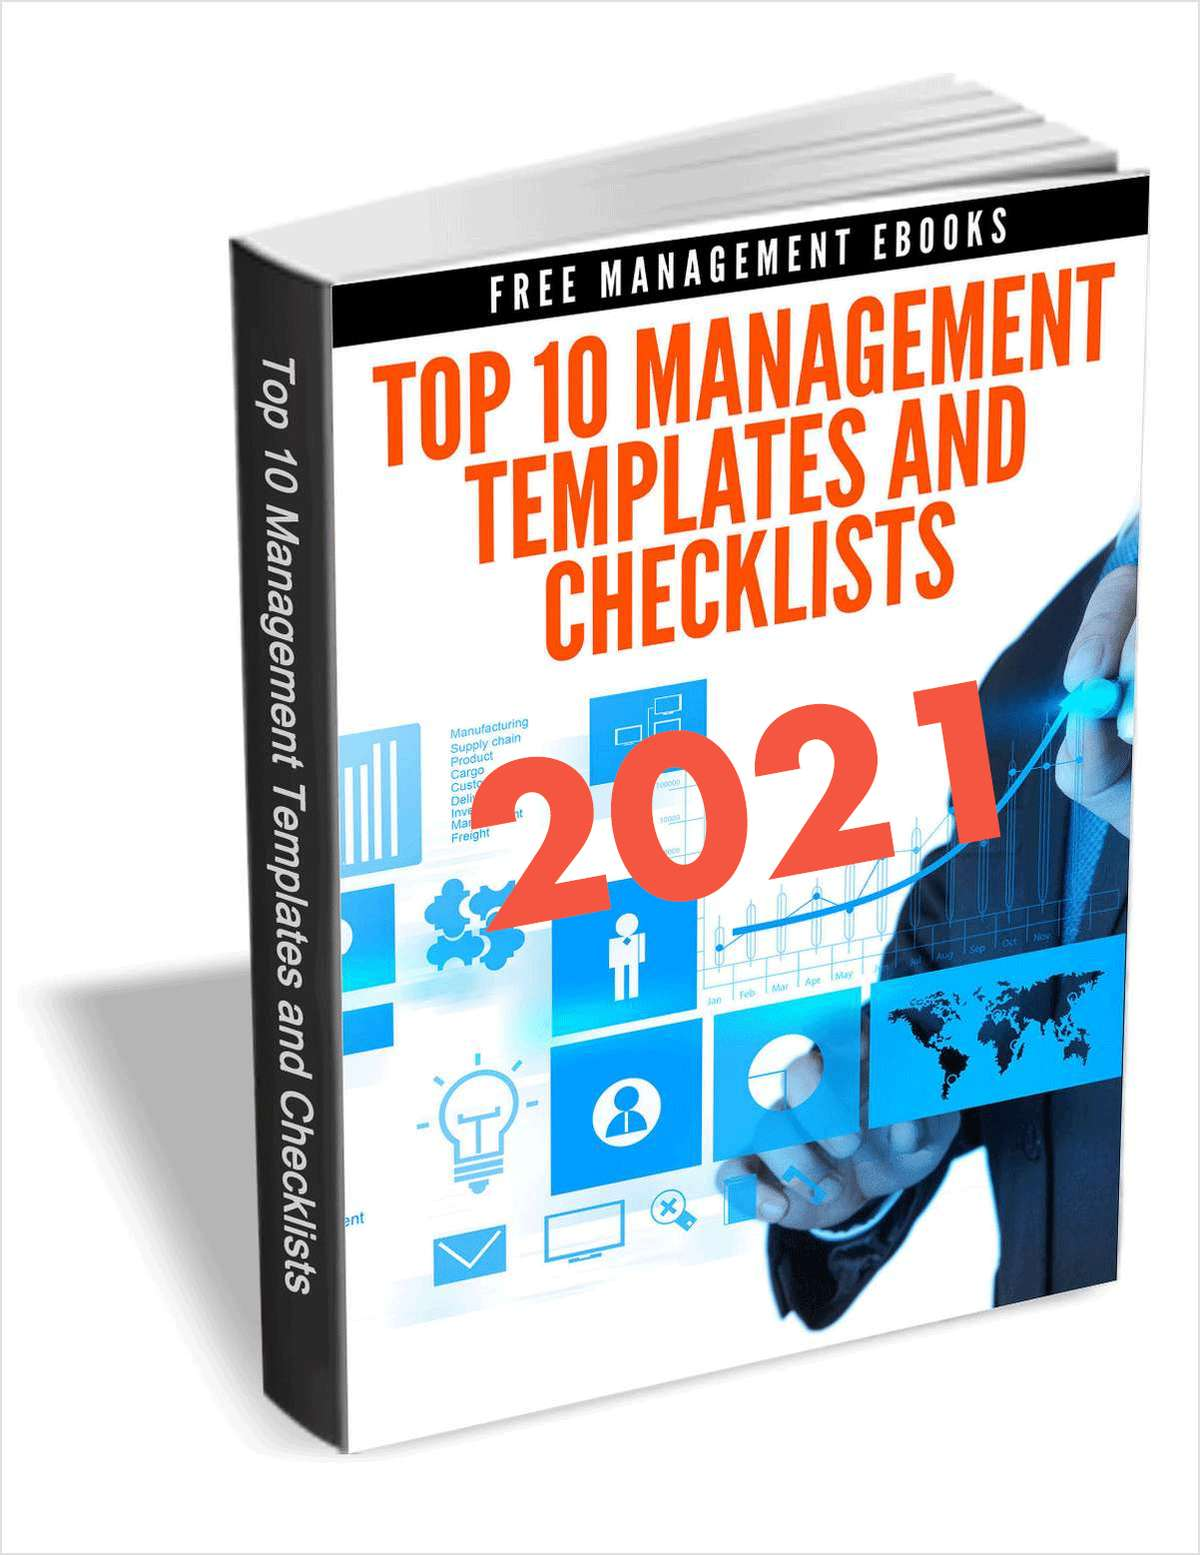 2020's Top 10 Management Templates and Checklists